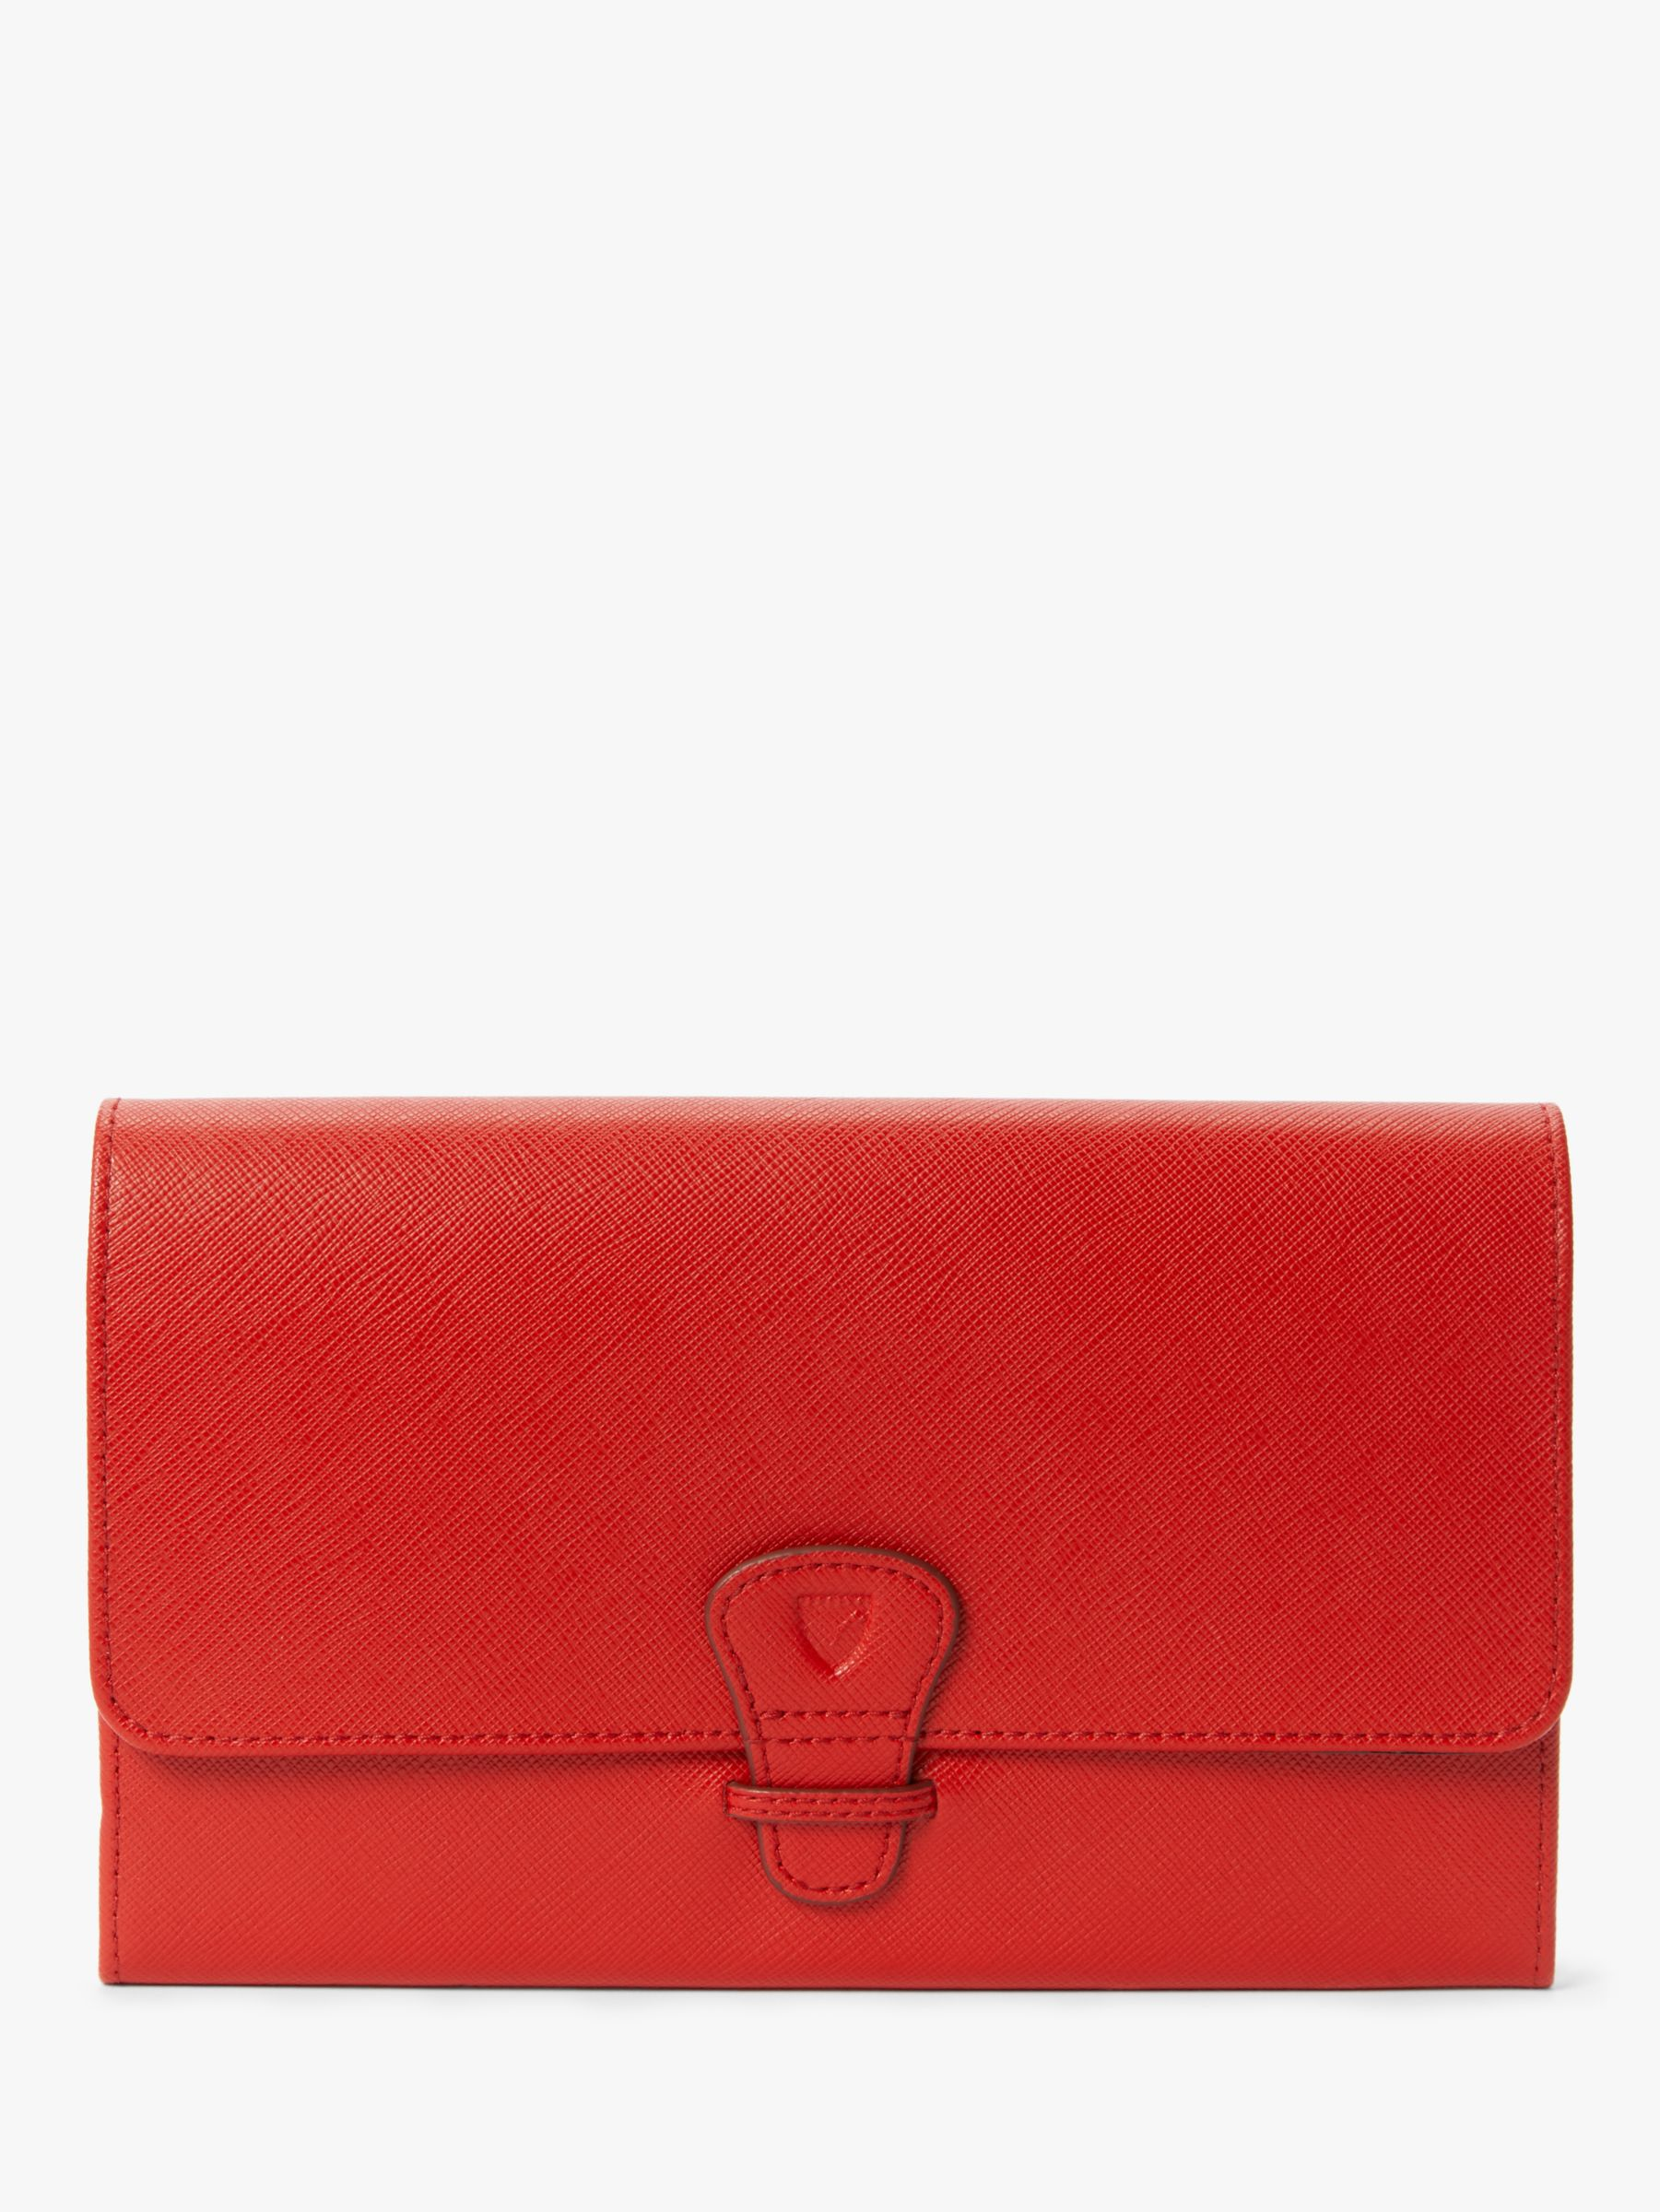 BEAUTIFUL SCARLET GENUINE Leather Skin  VERY soft /& supple could be HAND sewn.